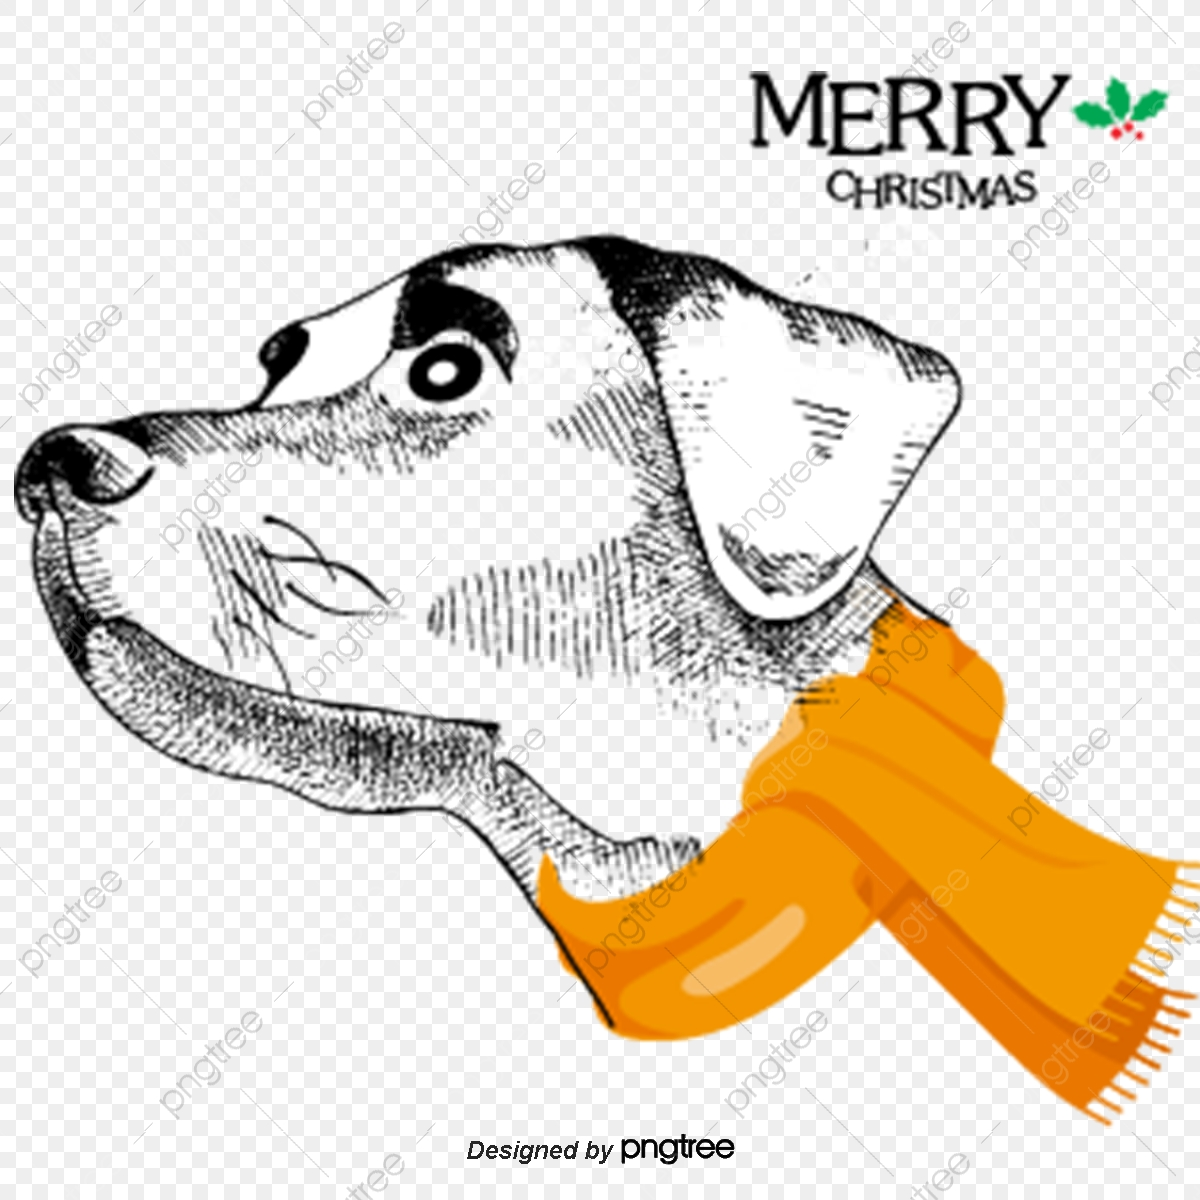 Cute Dog Christmas, Dog Clipart, Decoration, Vector PNG and Vector.